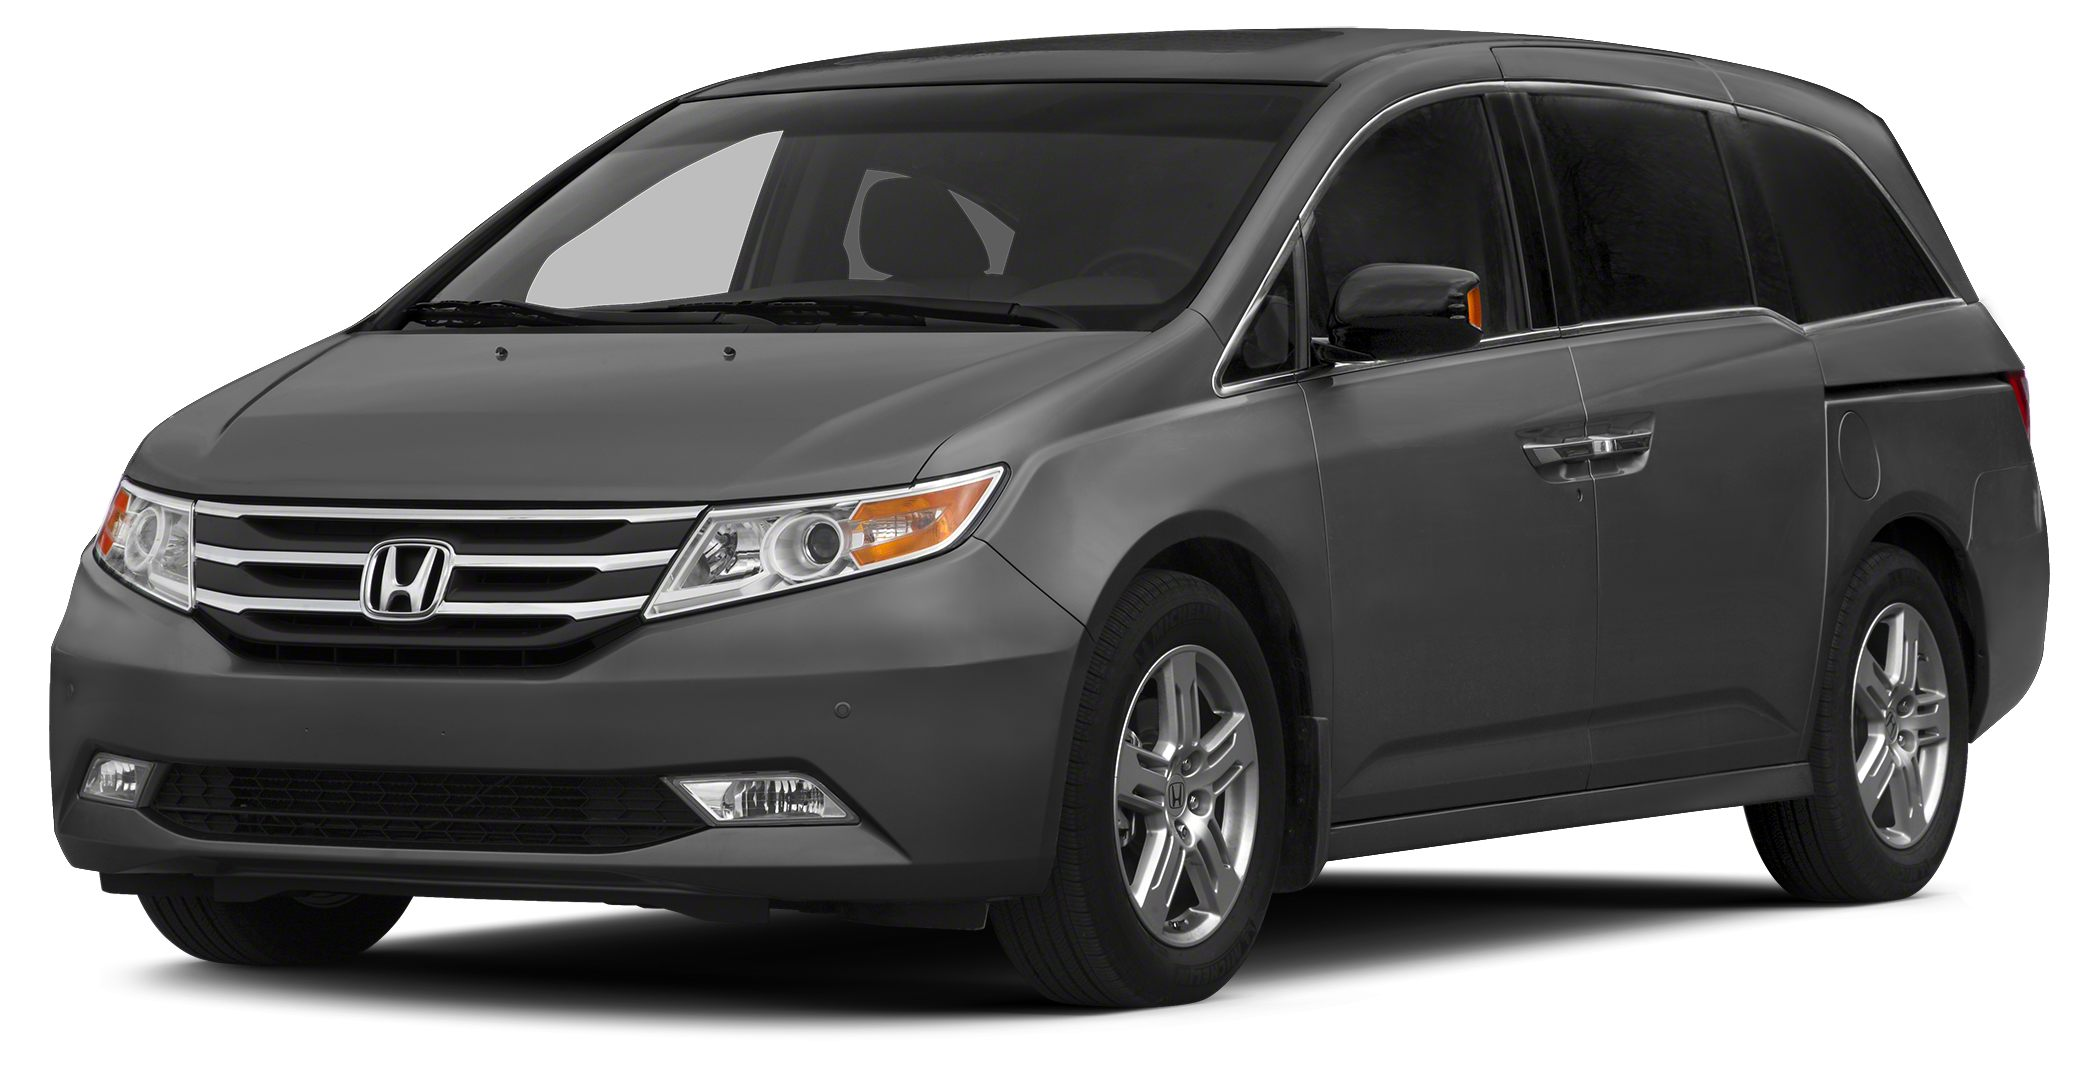 2013 Honda Odyssey EX-L Vehicle Detailed Recent Oil Change and Passed Dealer Inspection Seize t